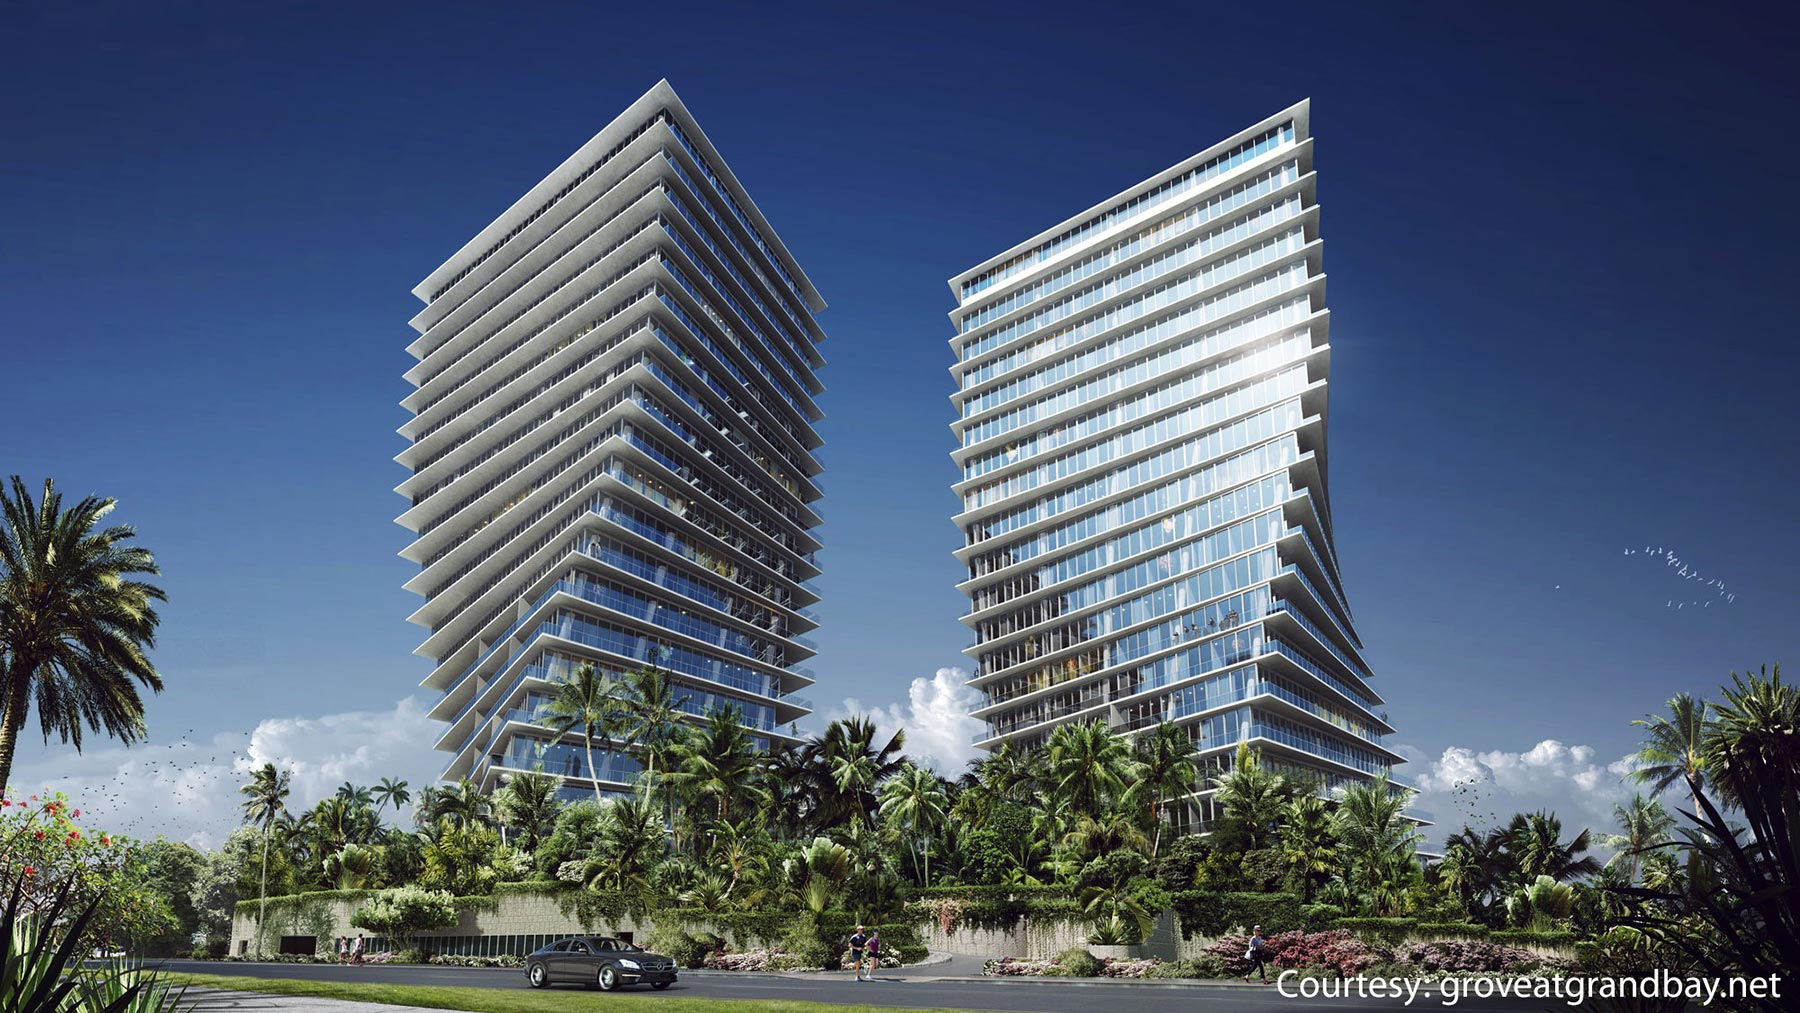 The Grove at Grand Bay's condos are among Miami's most-coveted residences.   Image courtesy of groveatgrandbay.net